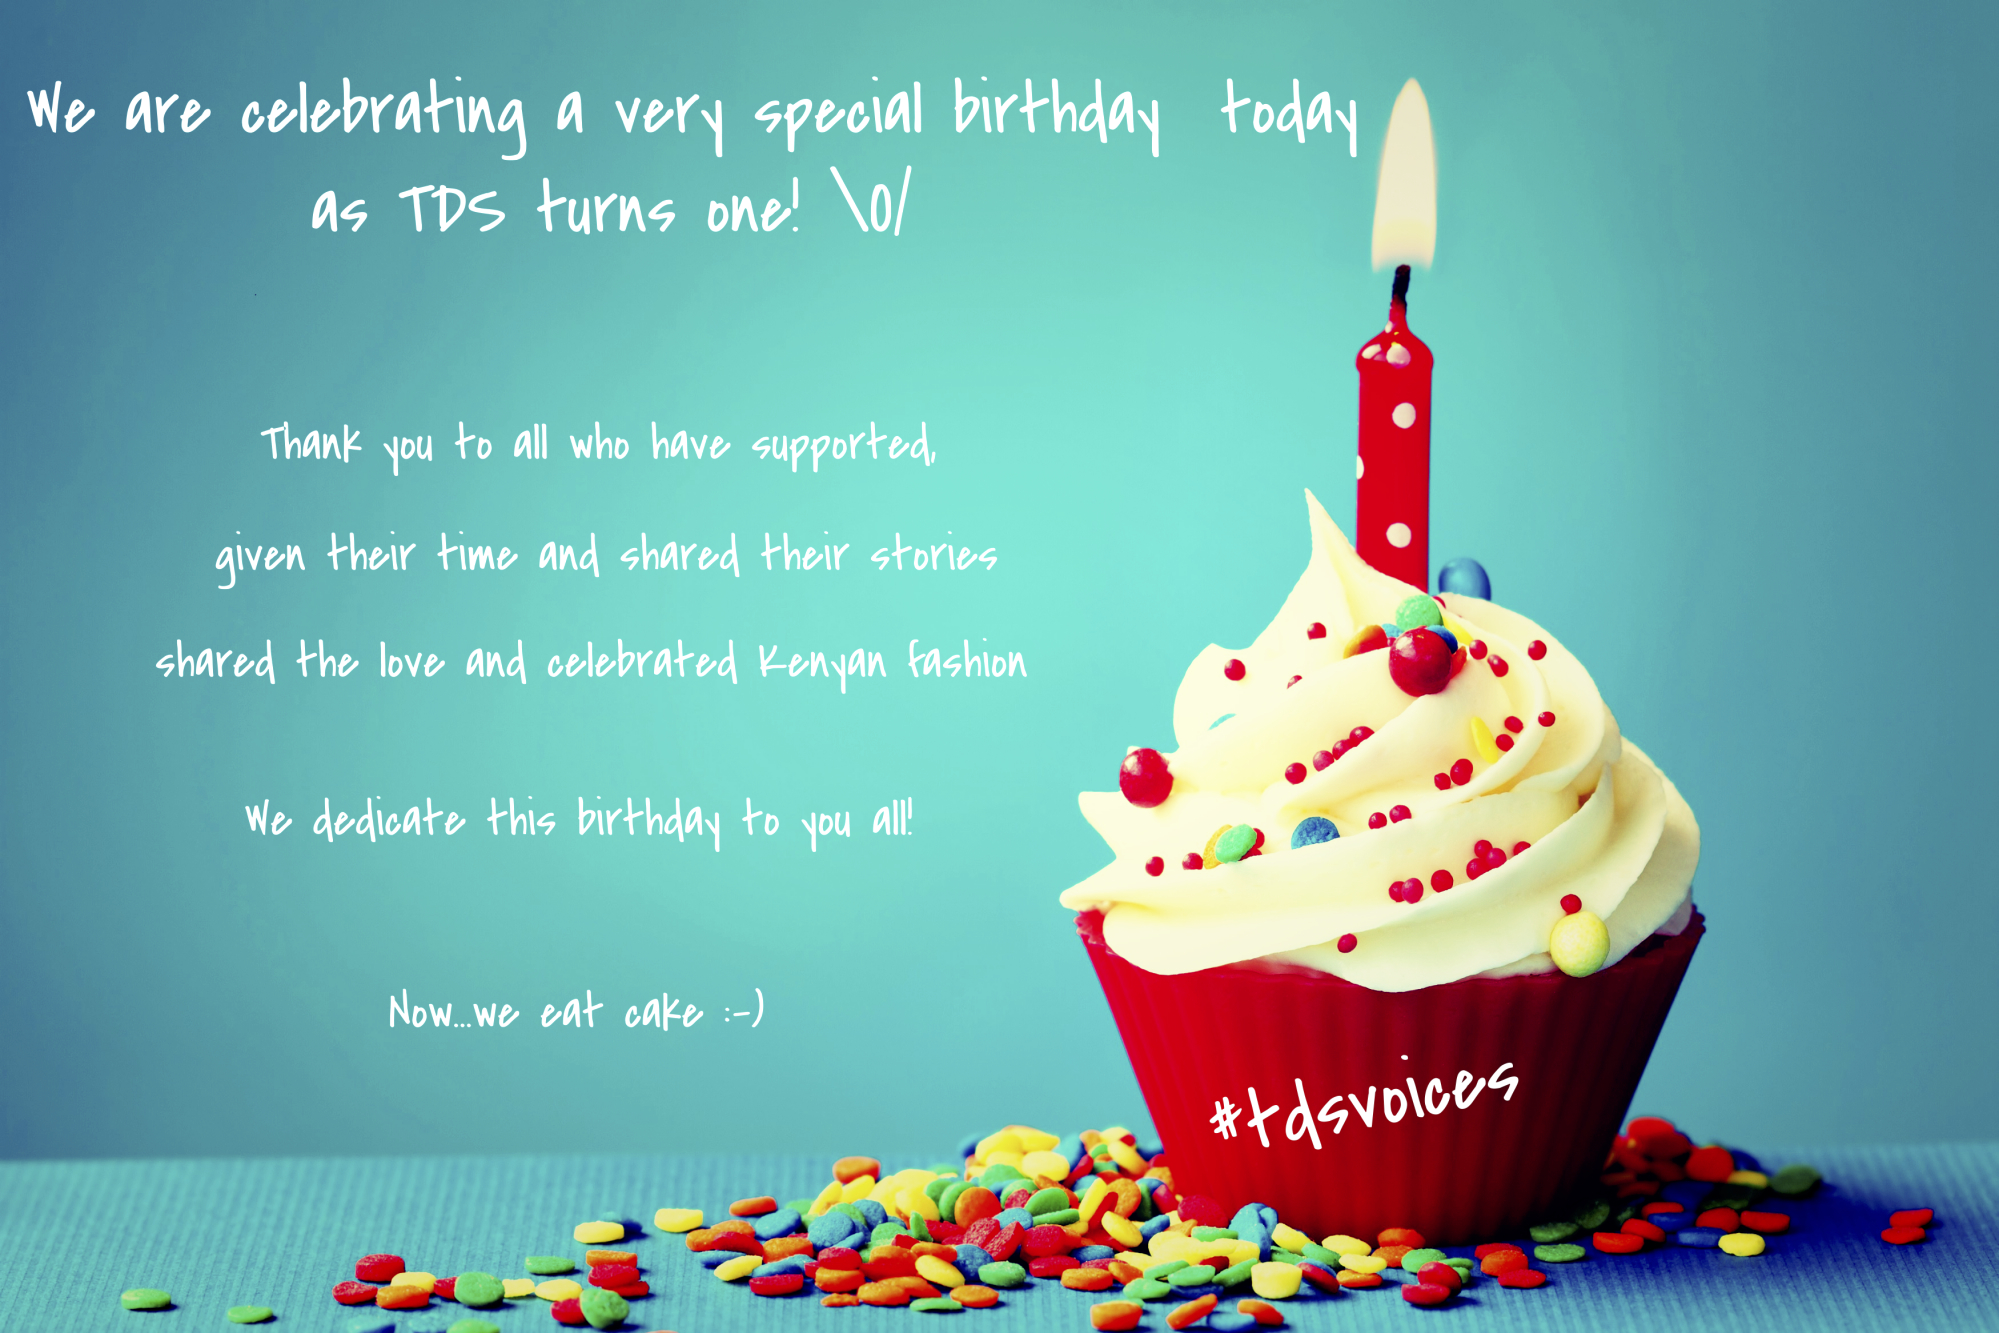 Today is a special day :-) TDS Turns one \o/